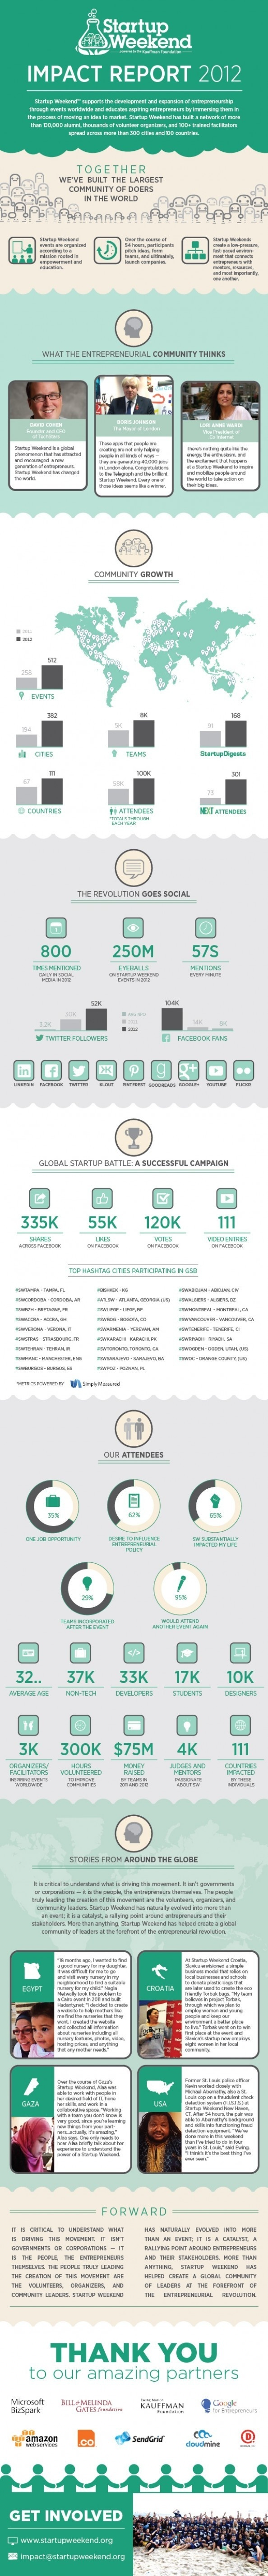 startup weekend impact report #information #text #close #infographic #design #graphic #icons #copy #illustration #data #up #section #teal #green